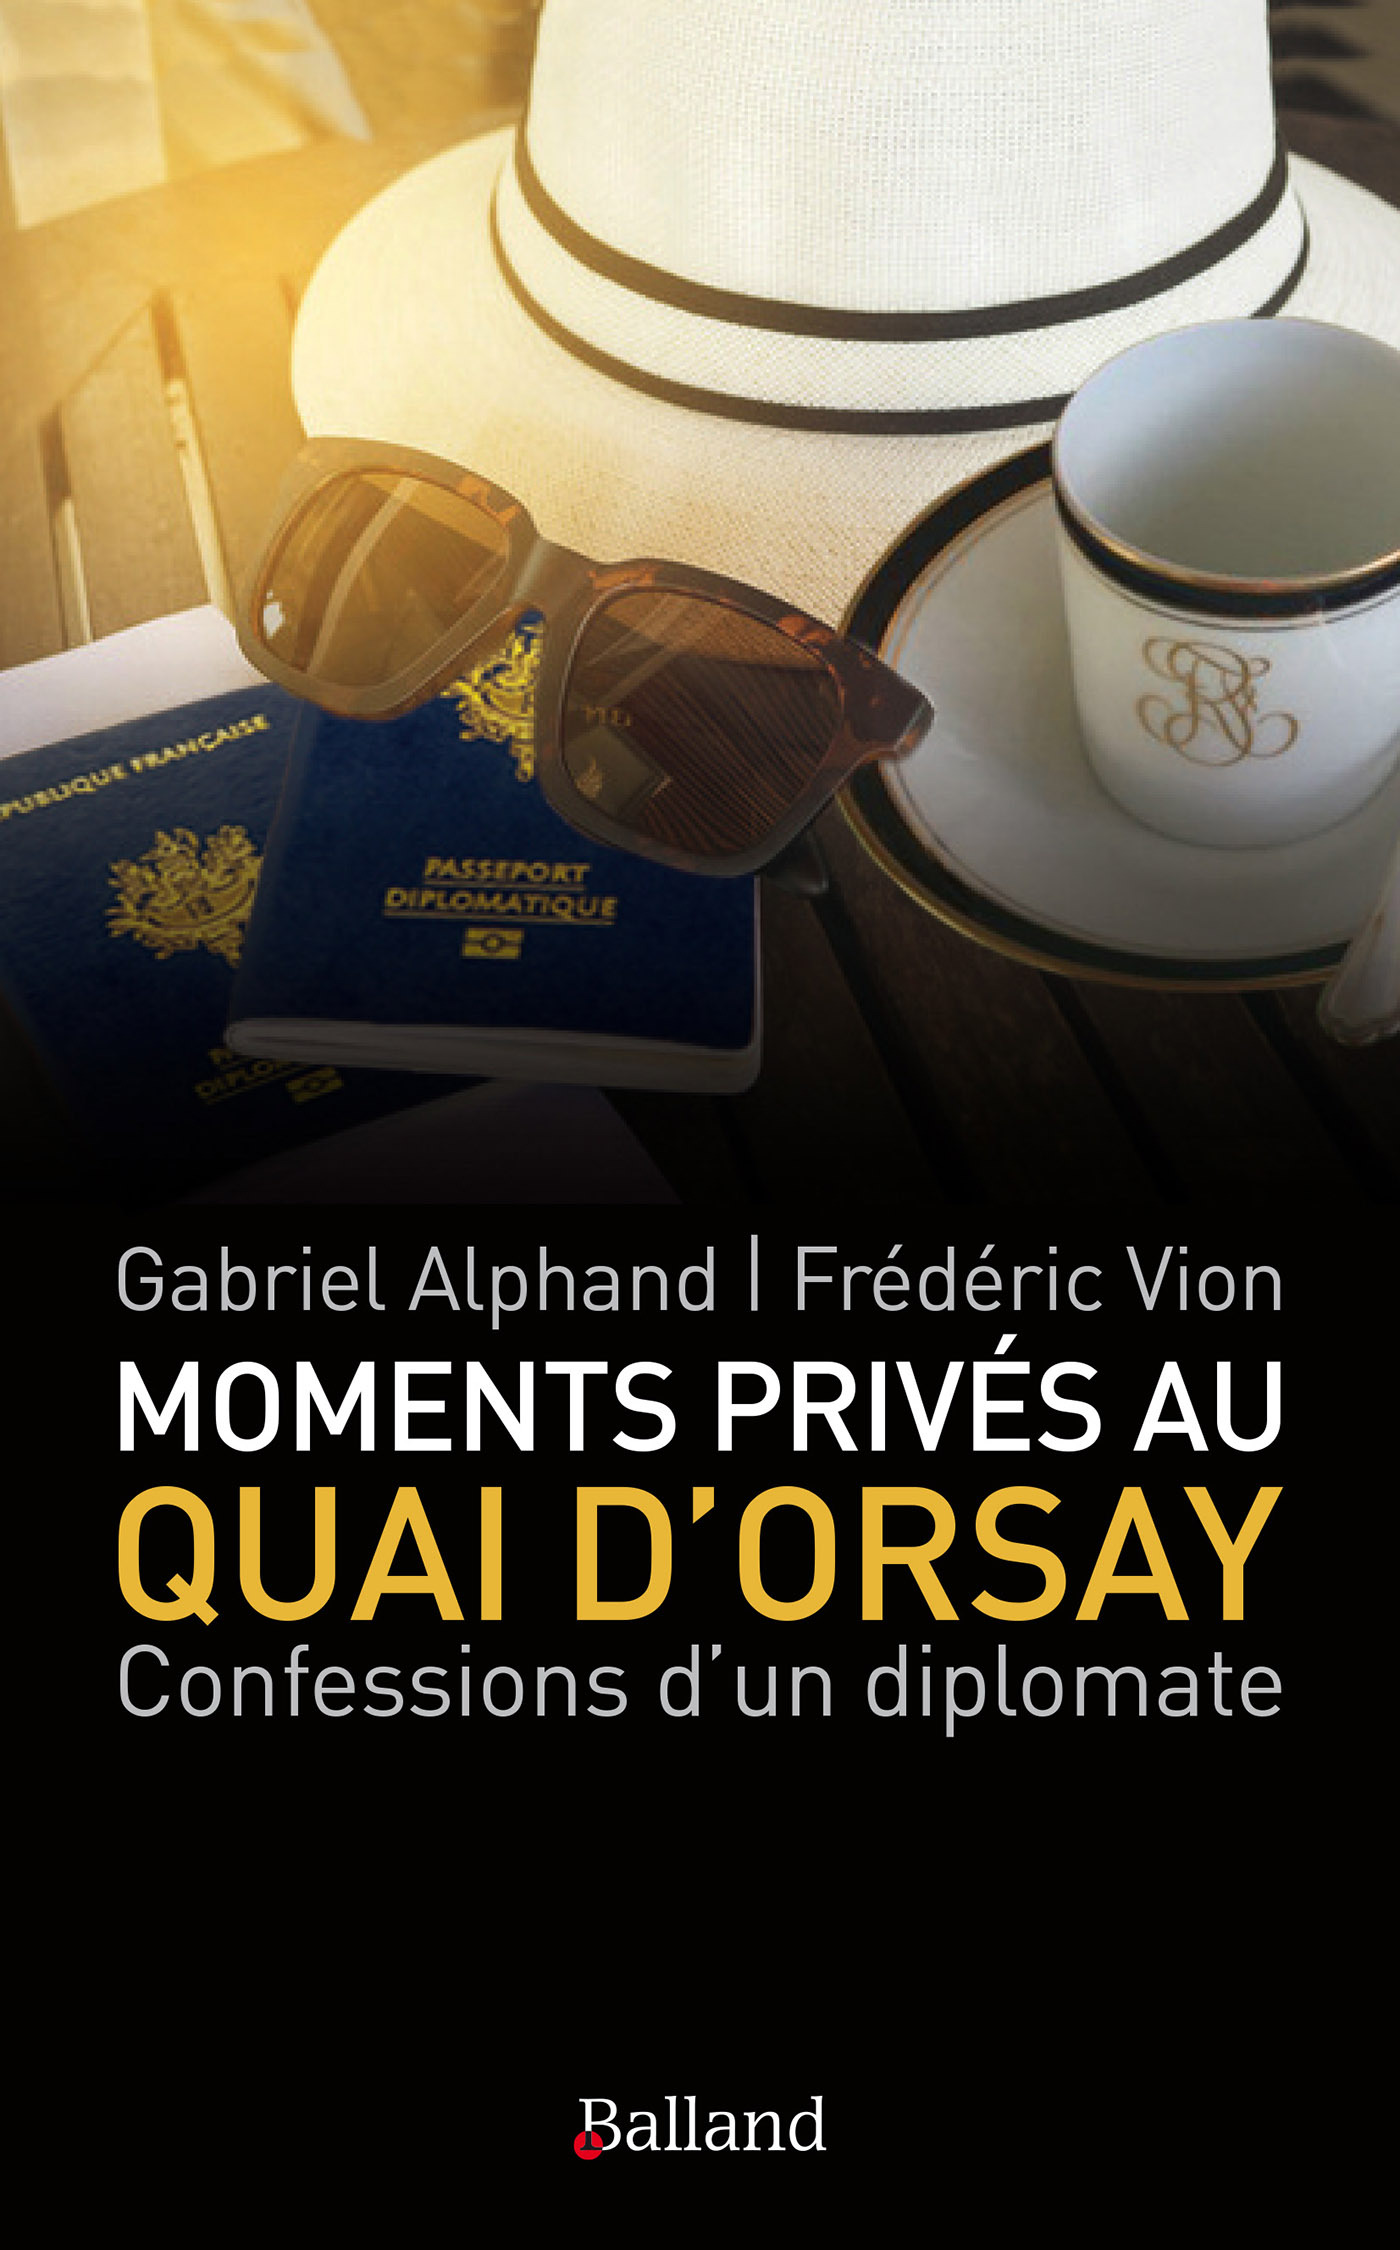 MOMENTS PRIVES AU QUAI D'ORSAY - CONFESSIONS D'UN DIPLOMATE